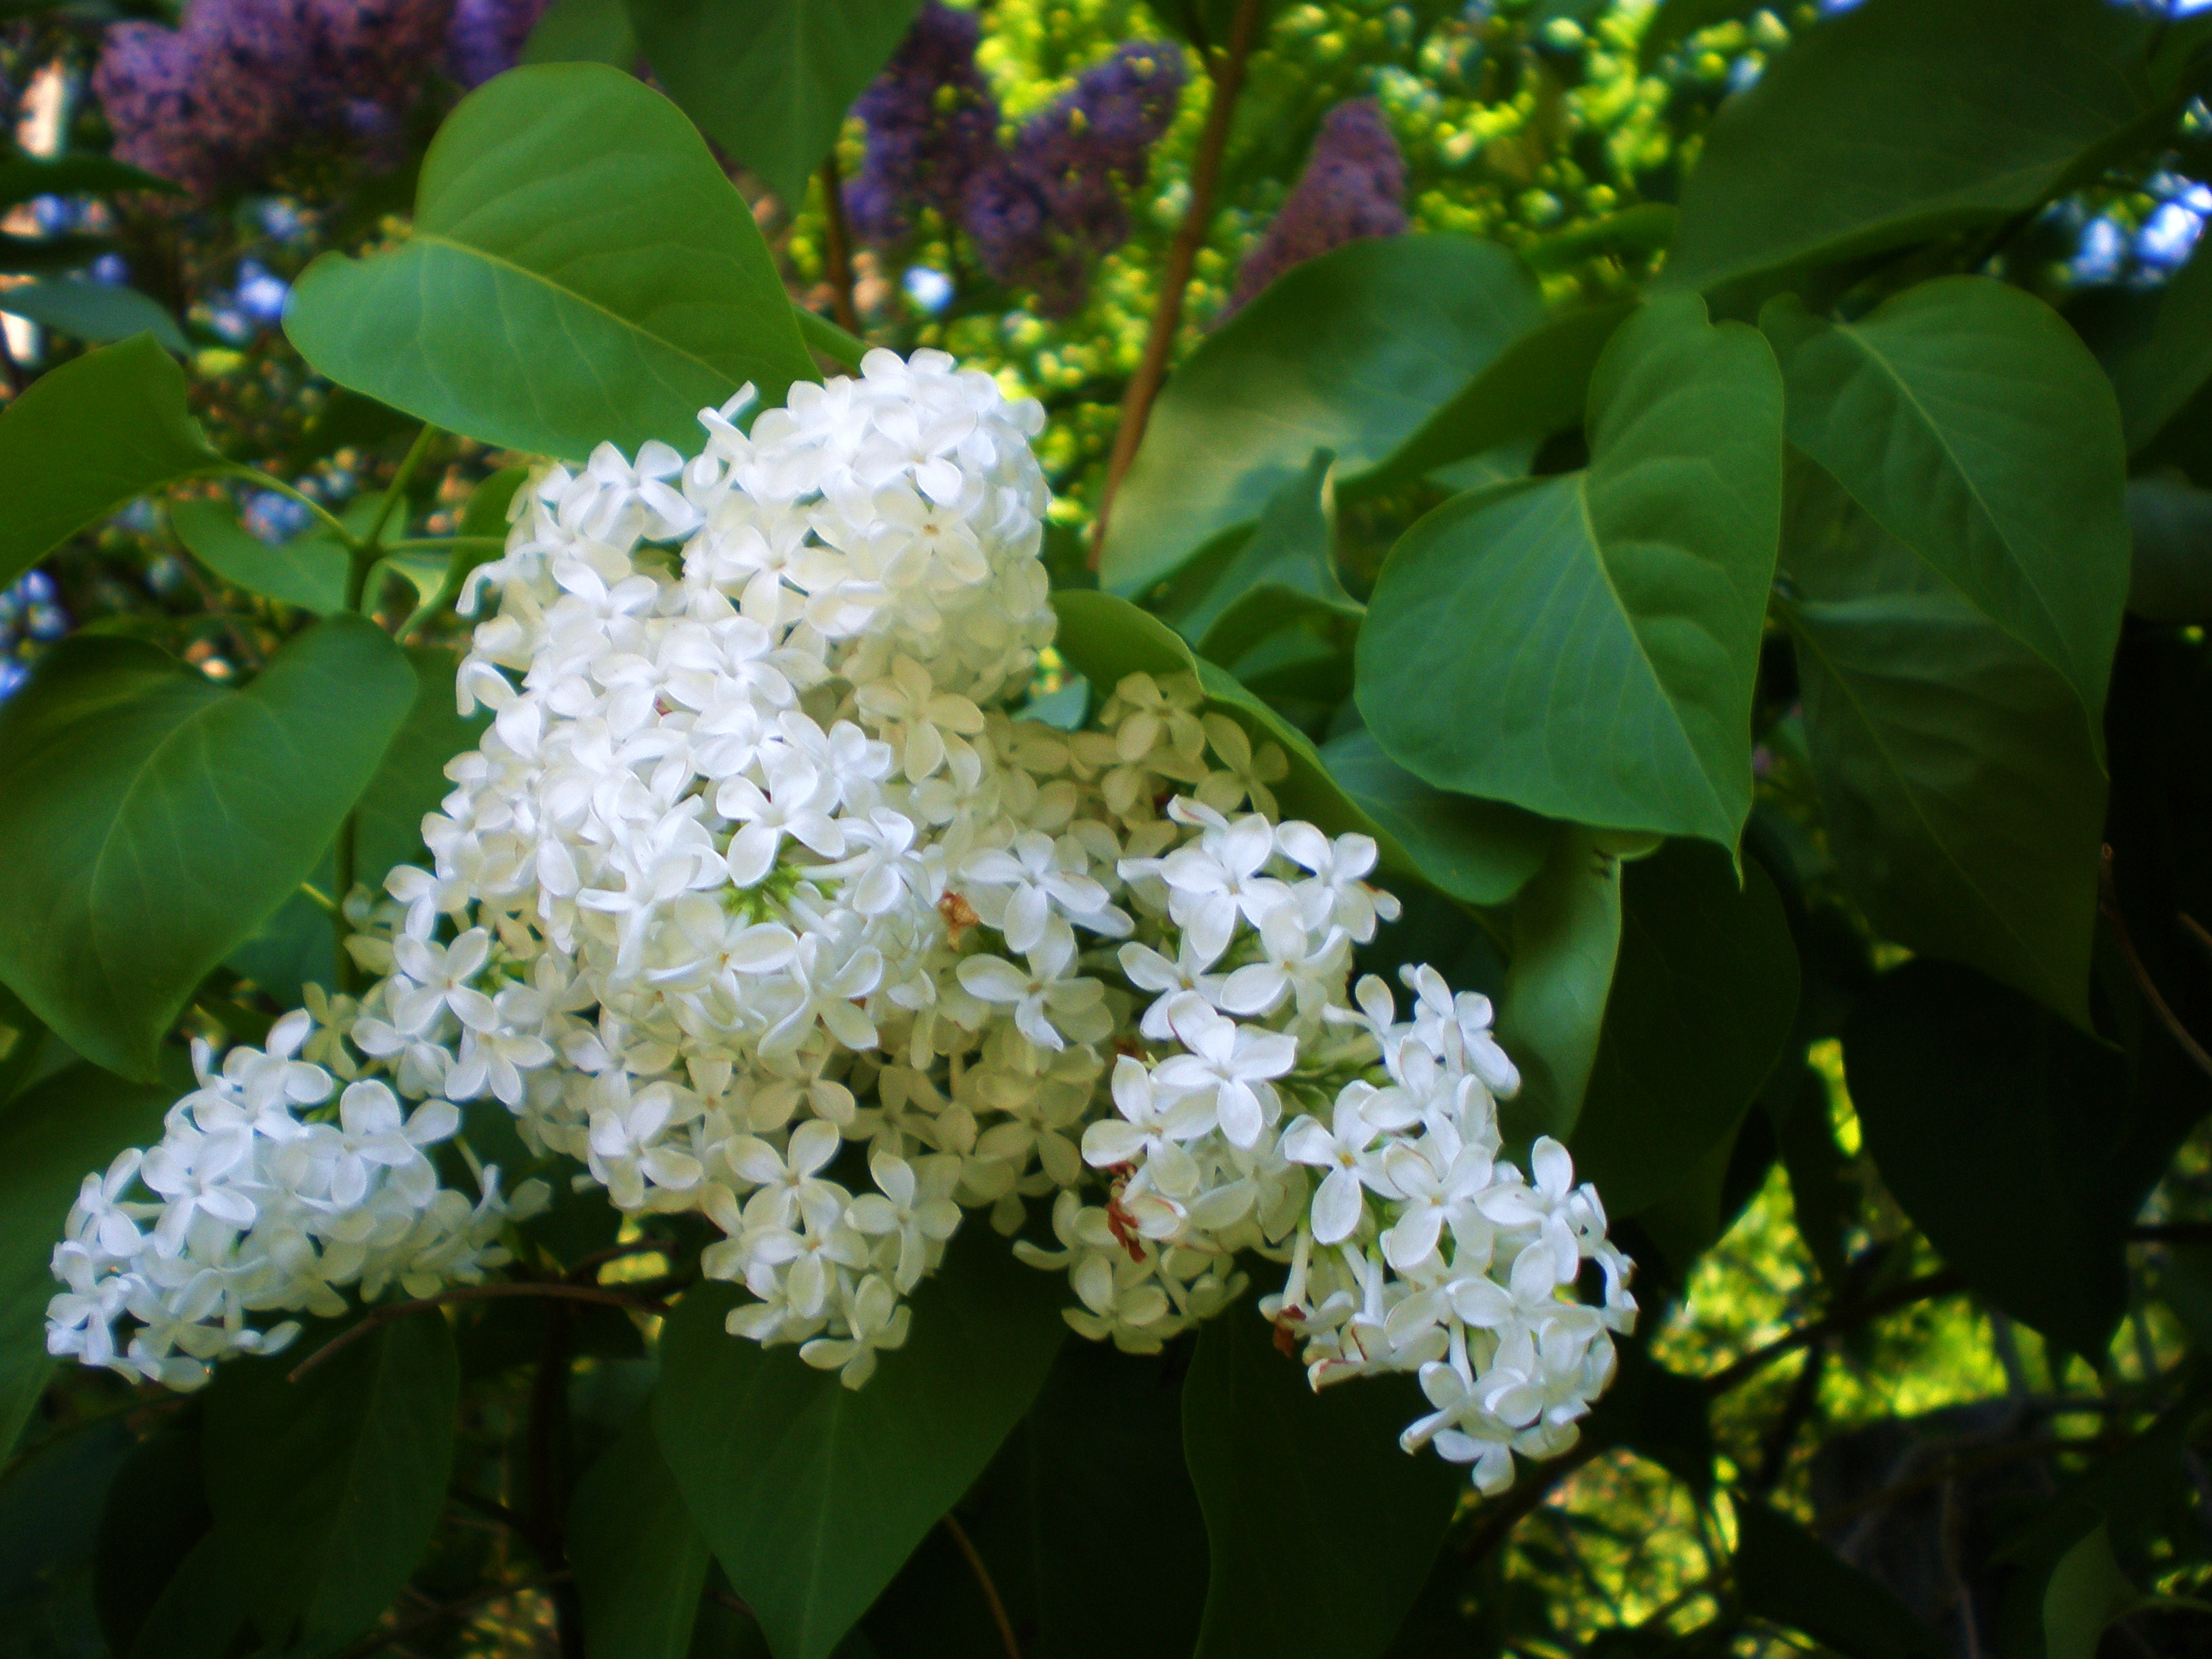 when lilacs las in the dooryard Find helpful customer reviews and review ratings for roger sessions: when lilacs last in the dooryard bloom'd at amazoncom read honest and.